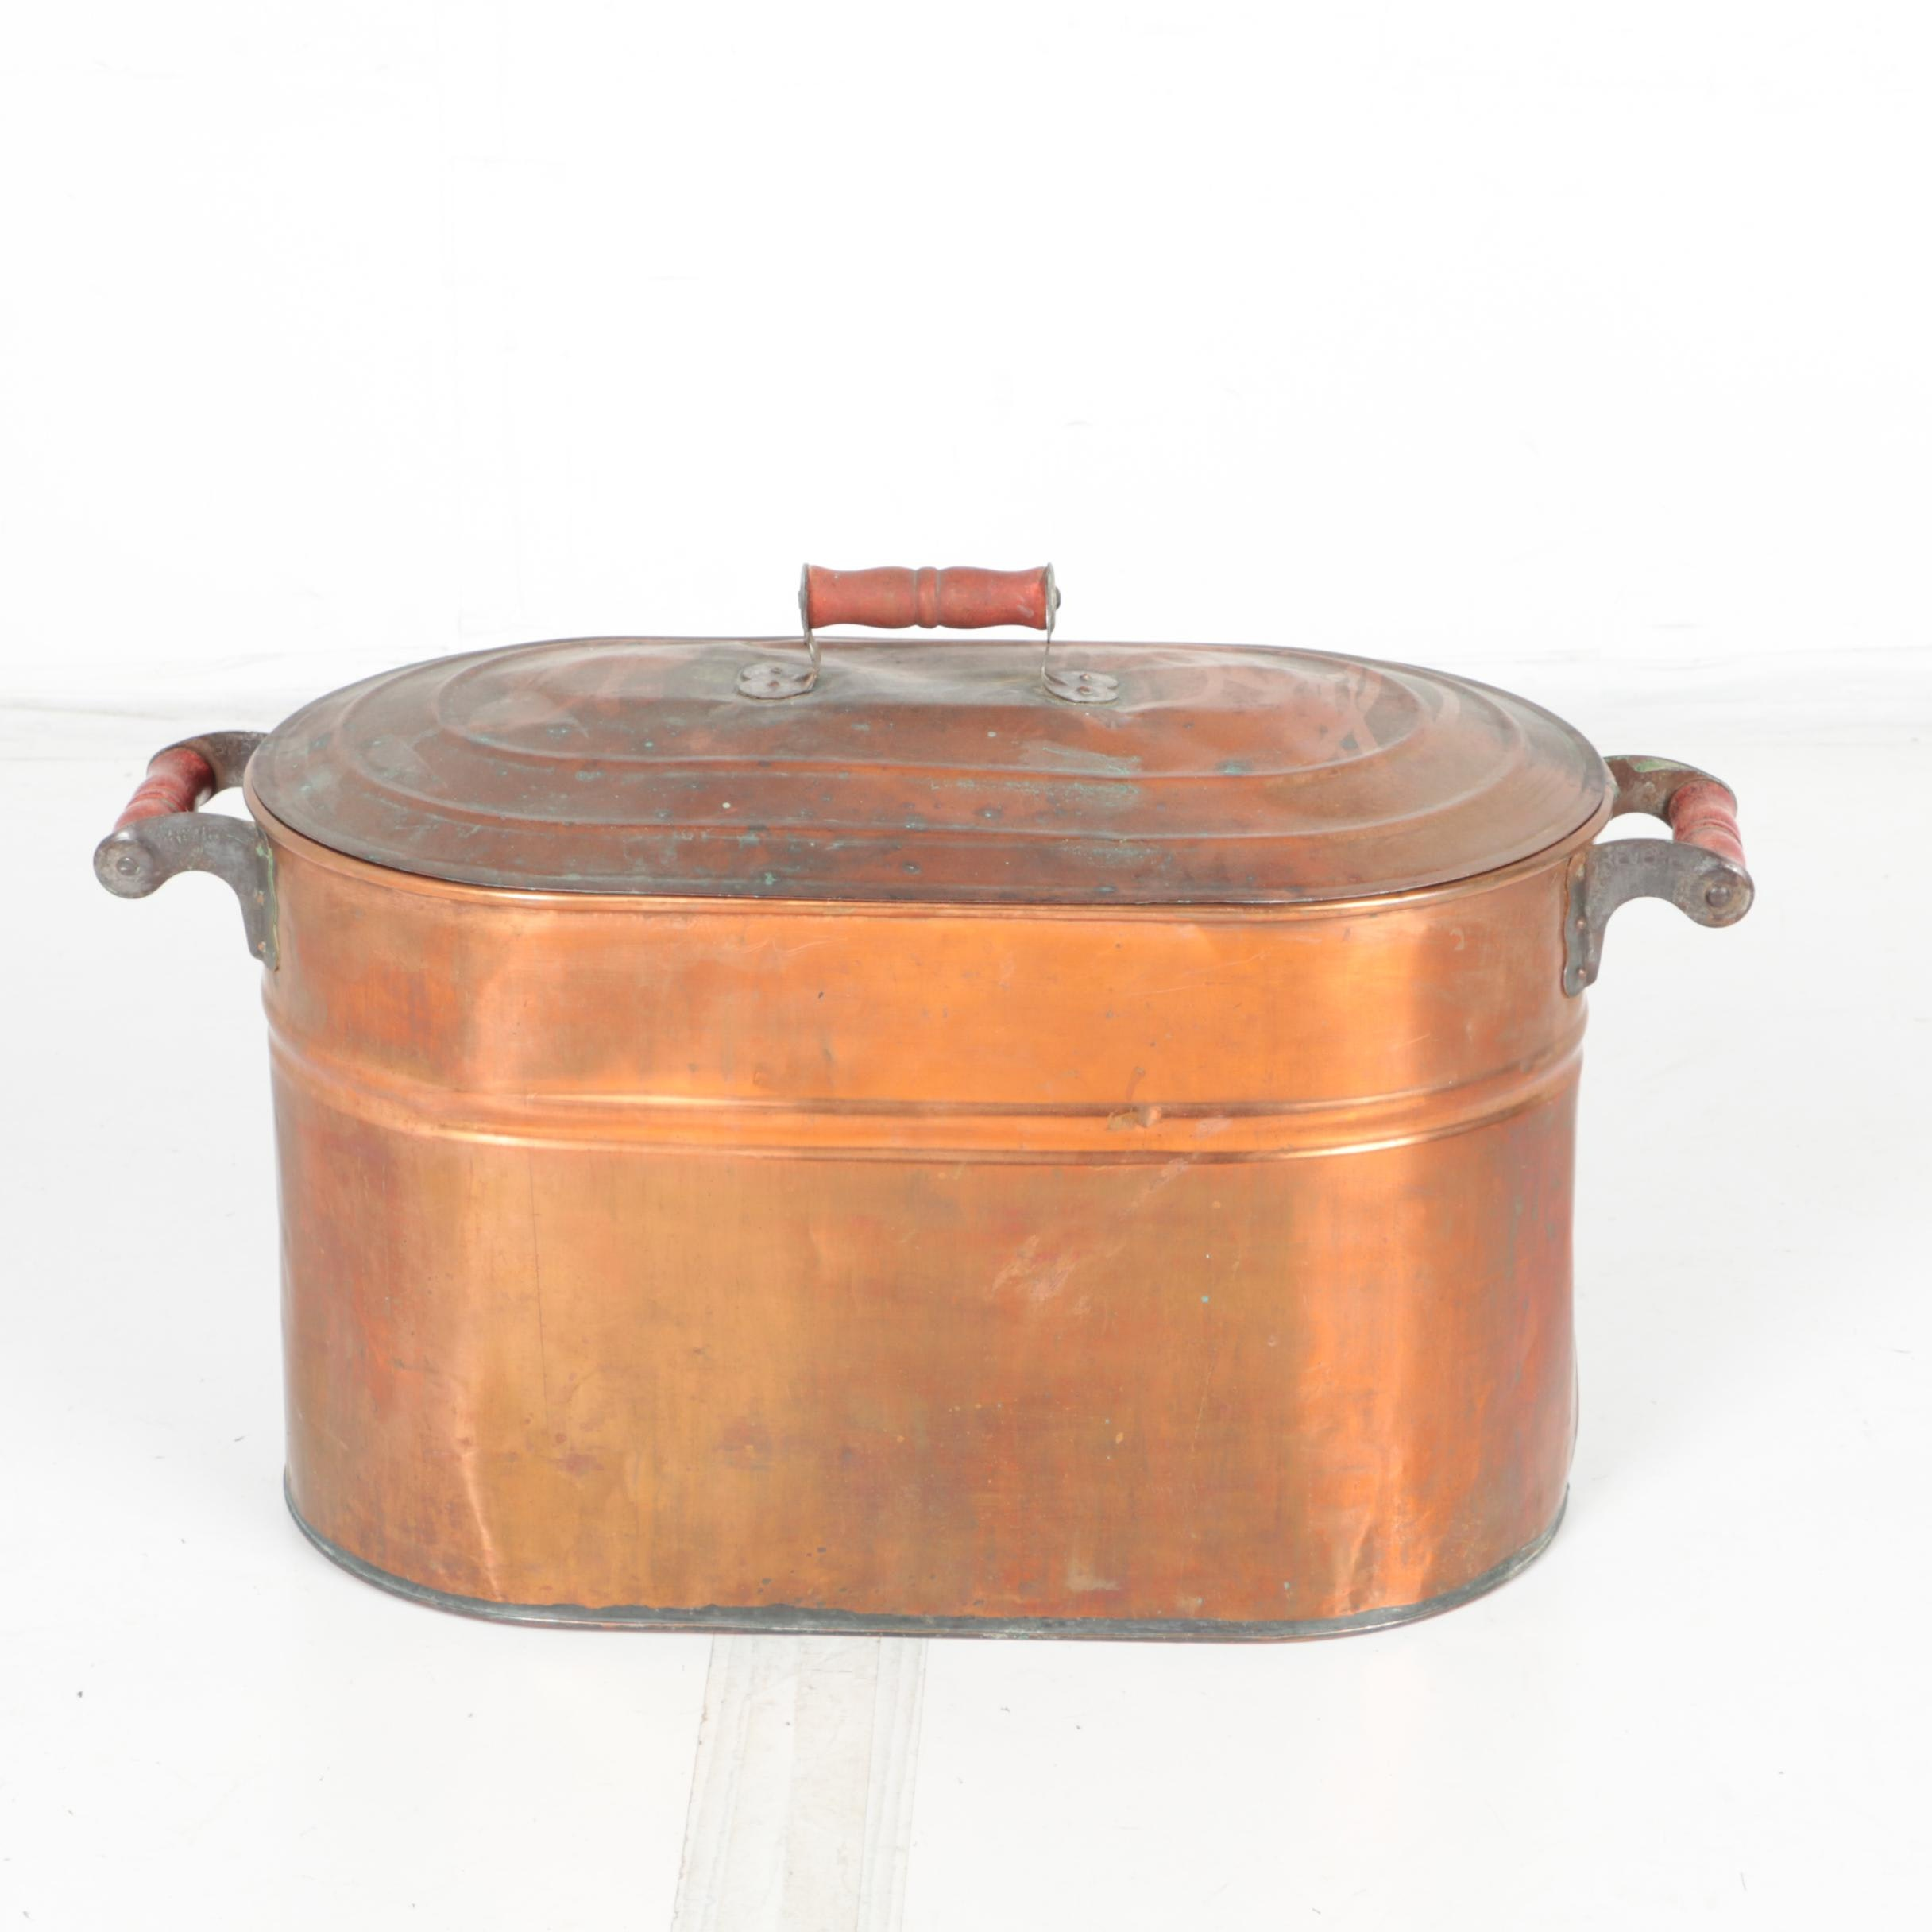 Revere Copper Boiler with Lid